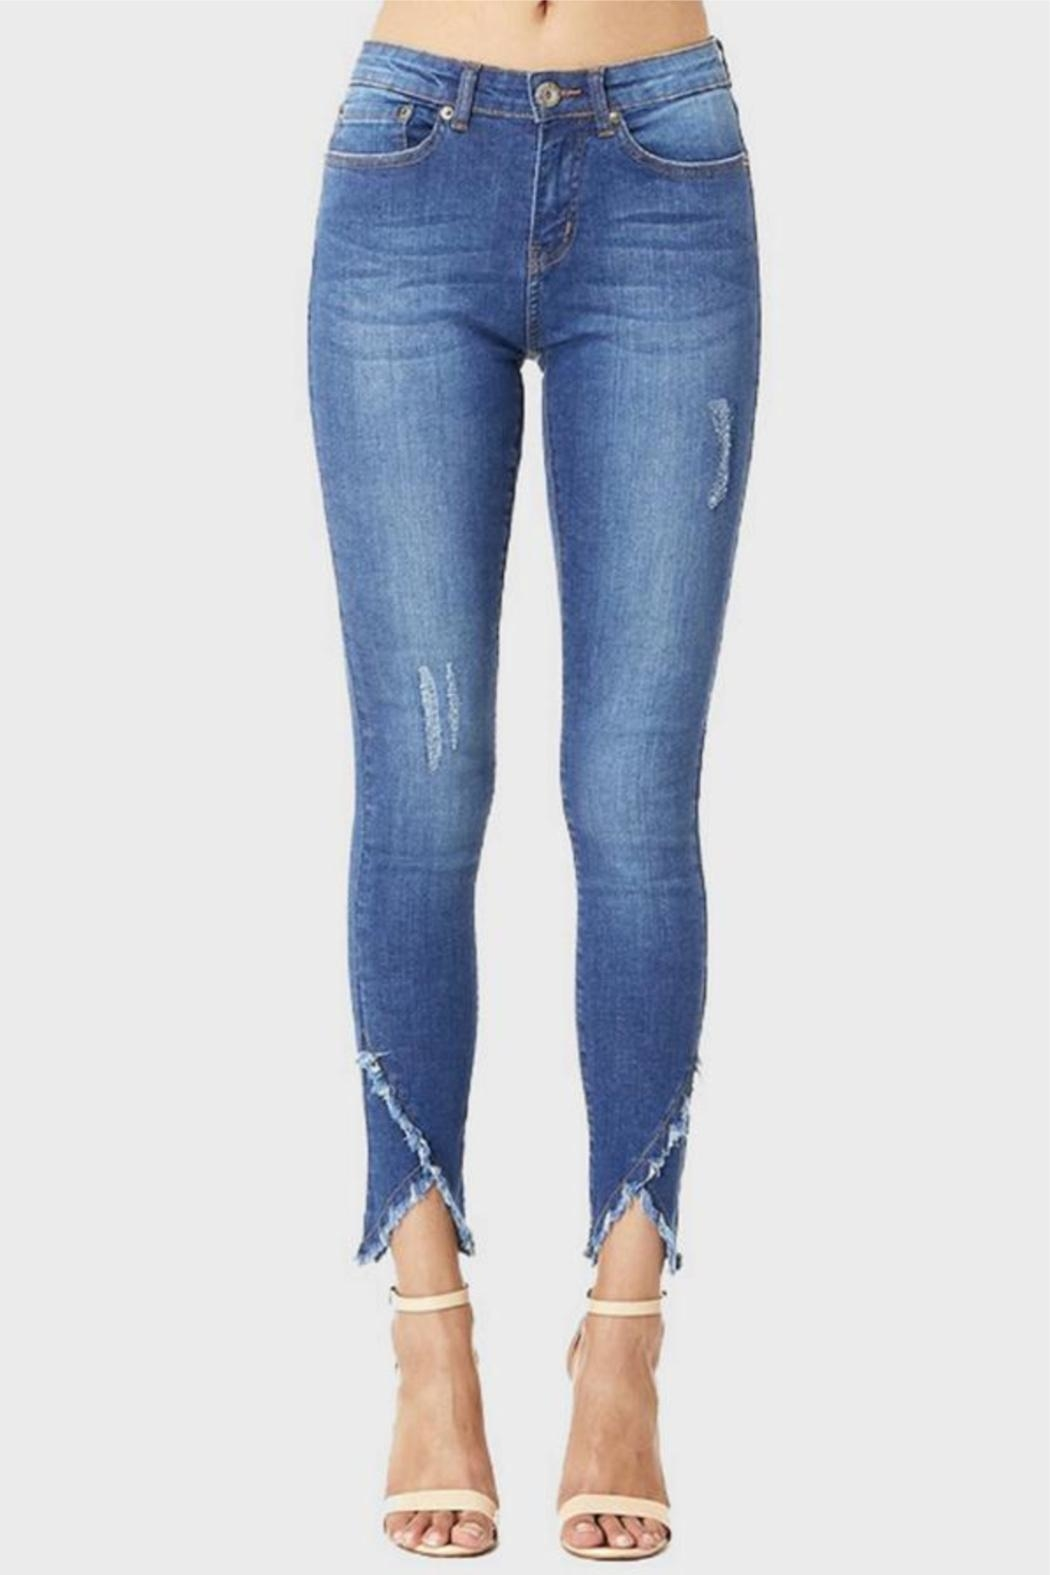 Muselooks Mid-Rise Frayed-Ankle Skinny-Jean - Main Image